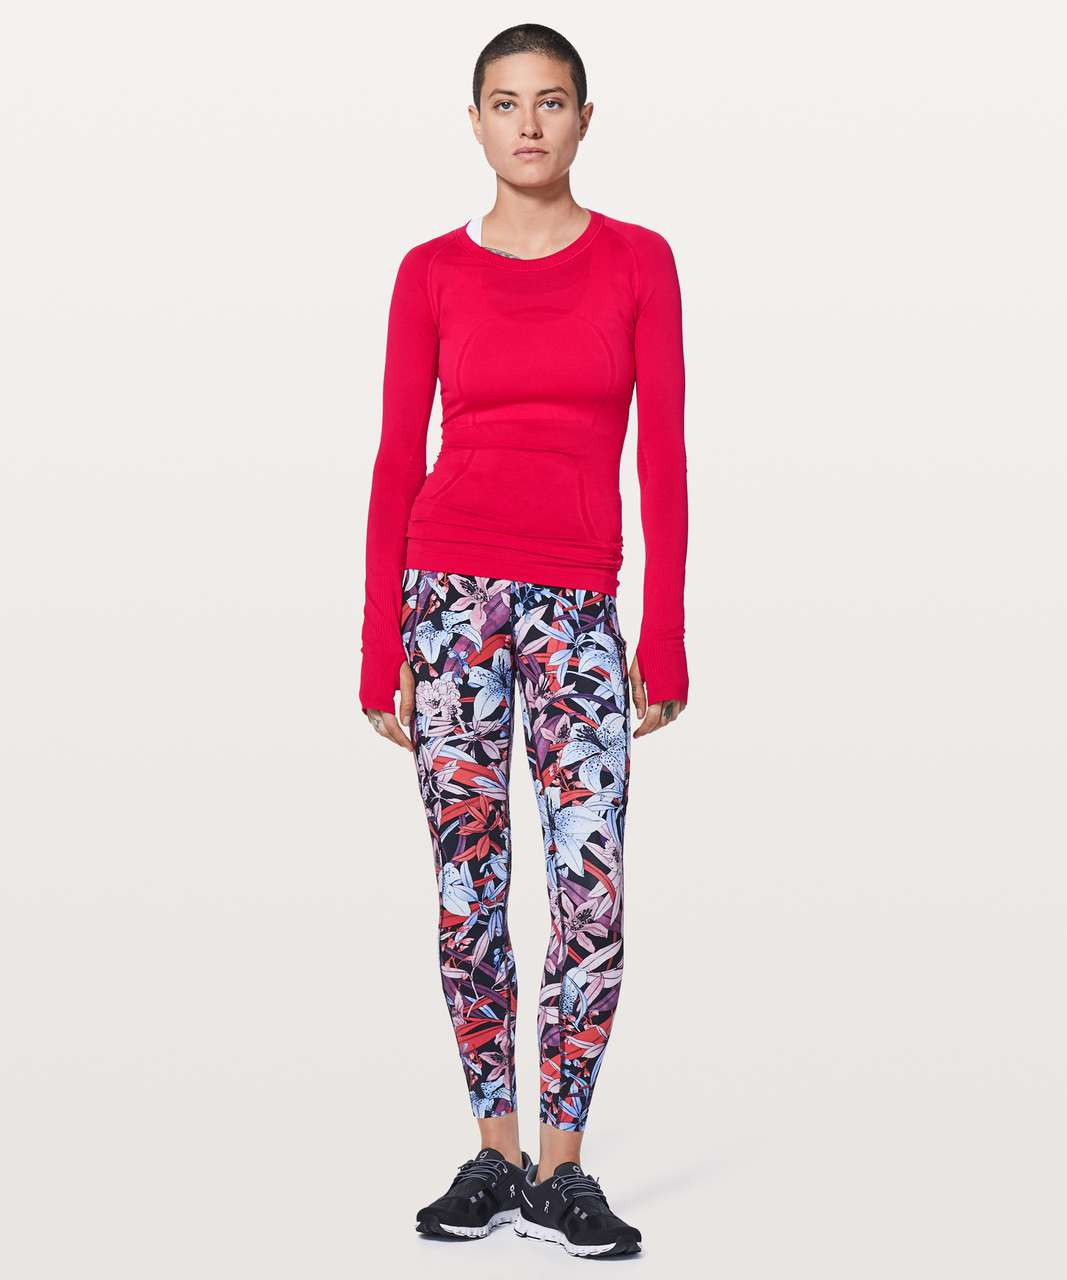 Lululemon Swiftly Tech Long Sleeve Crew - Flamenco Red / Flamenco Red